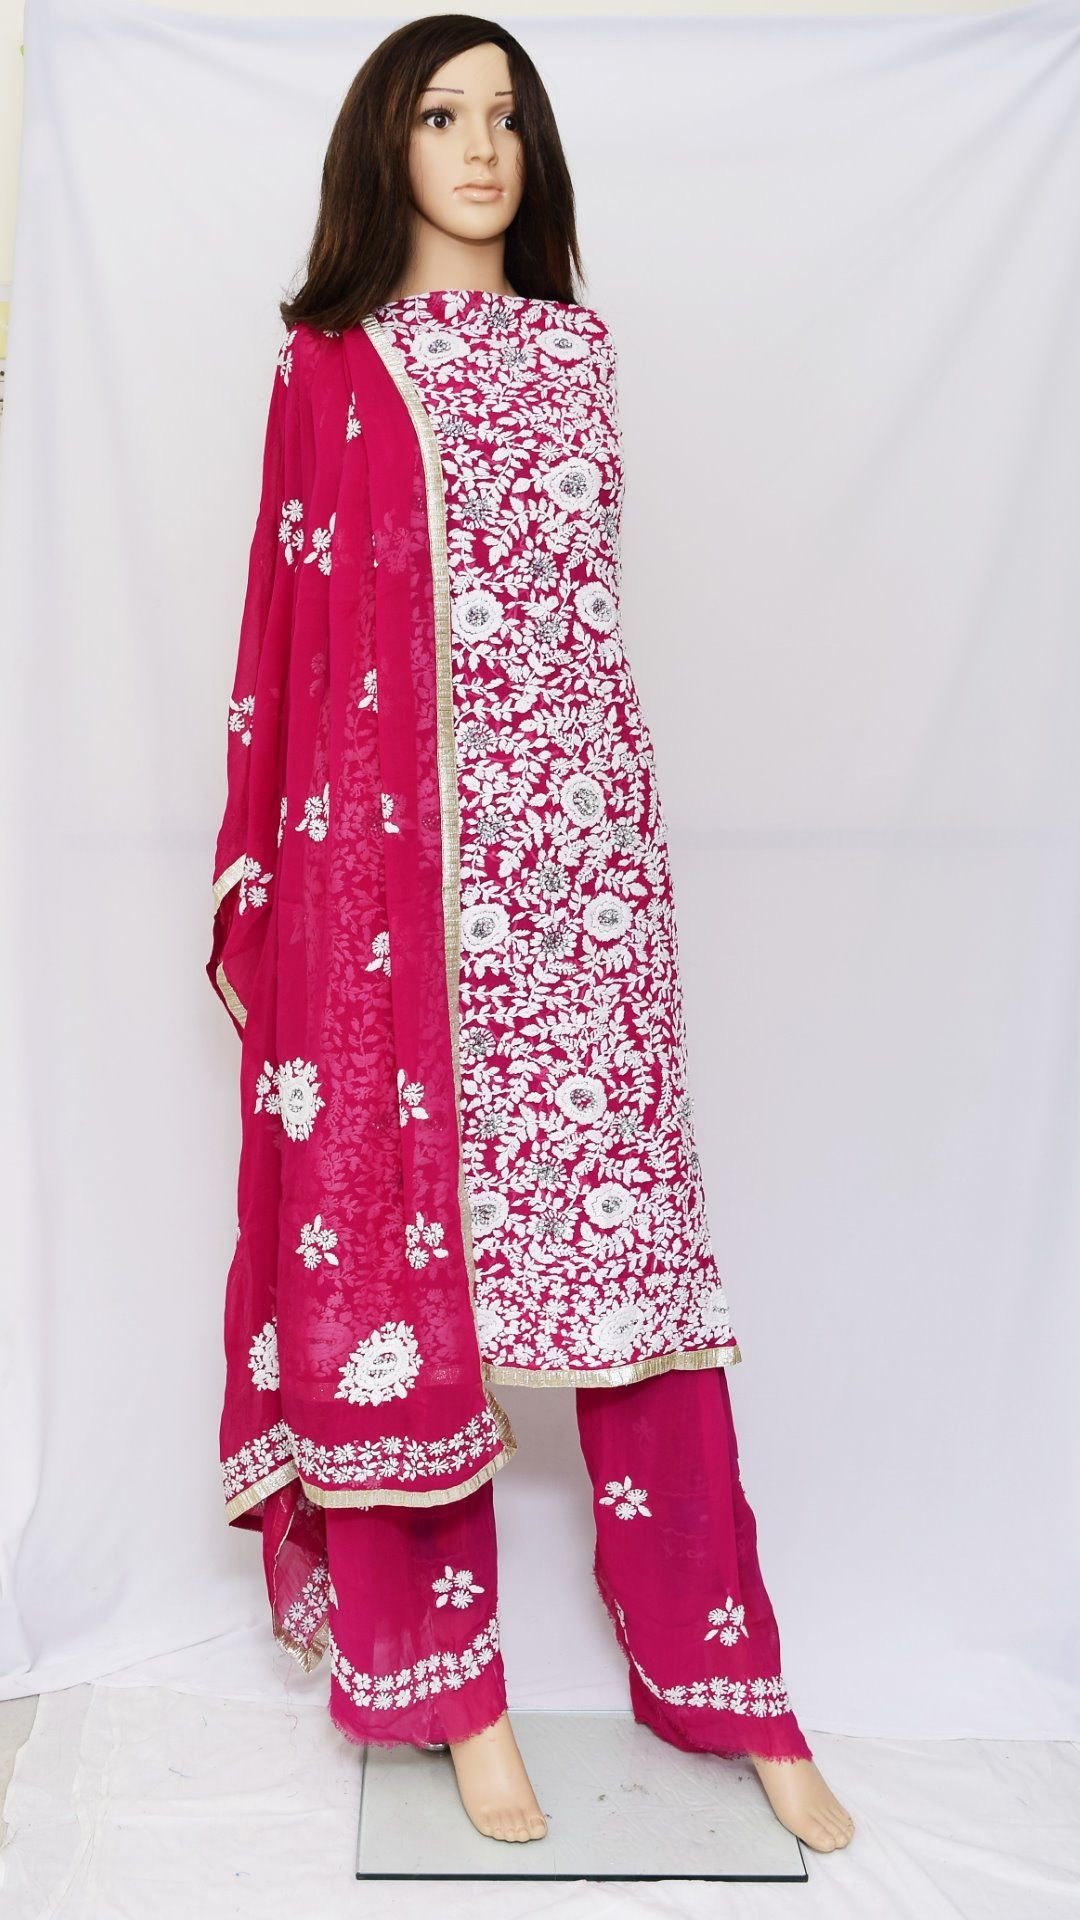 S.K. Ethnic India Pink Magenta Heavy Hand Embroidered Georgette Full Salwar Kameez Suit With ...